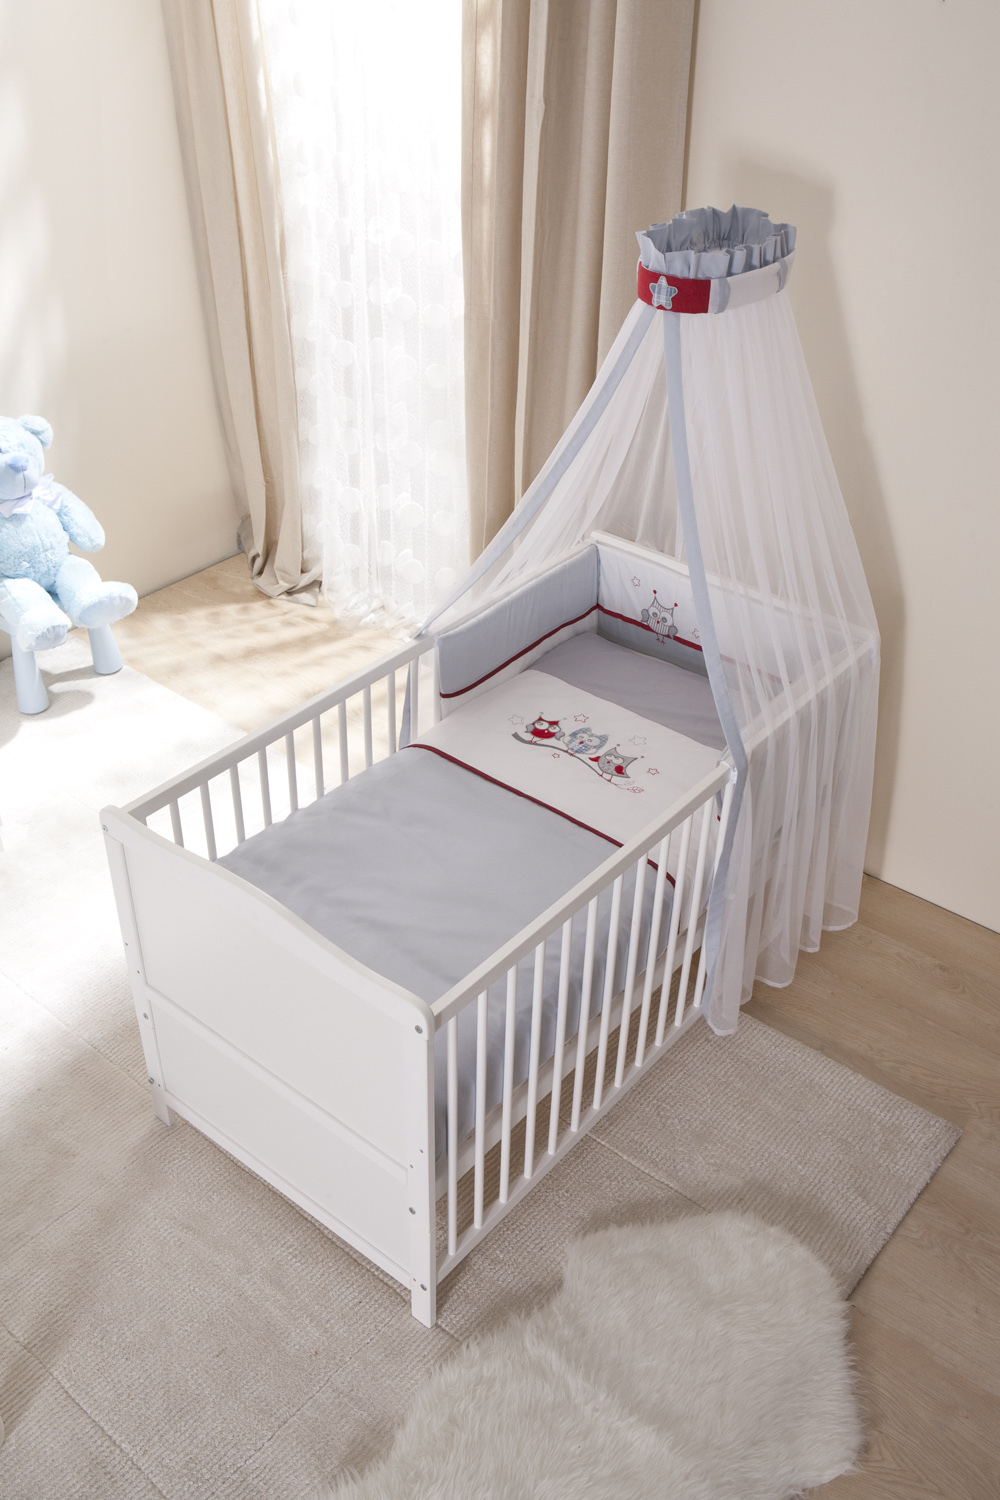 Adult baby crib answer